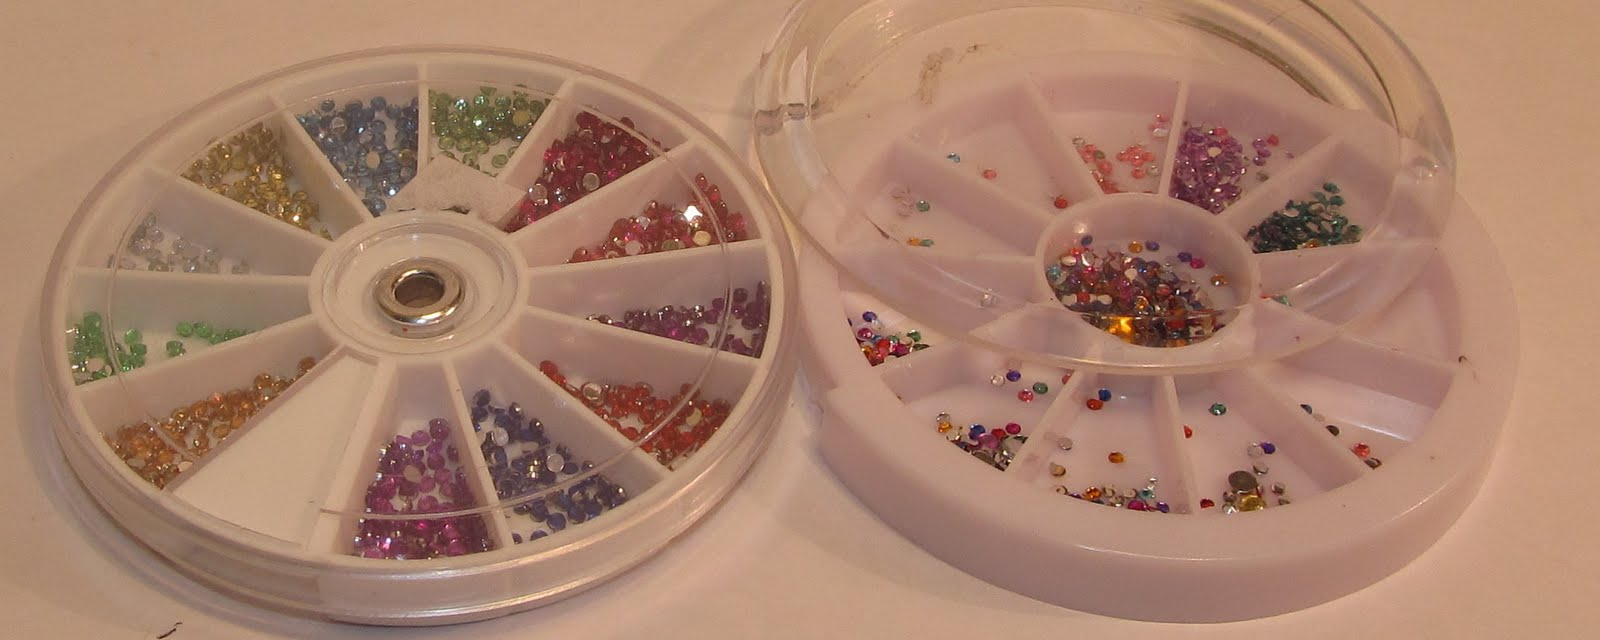 Rhinestone Storage Solution